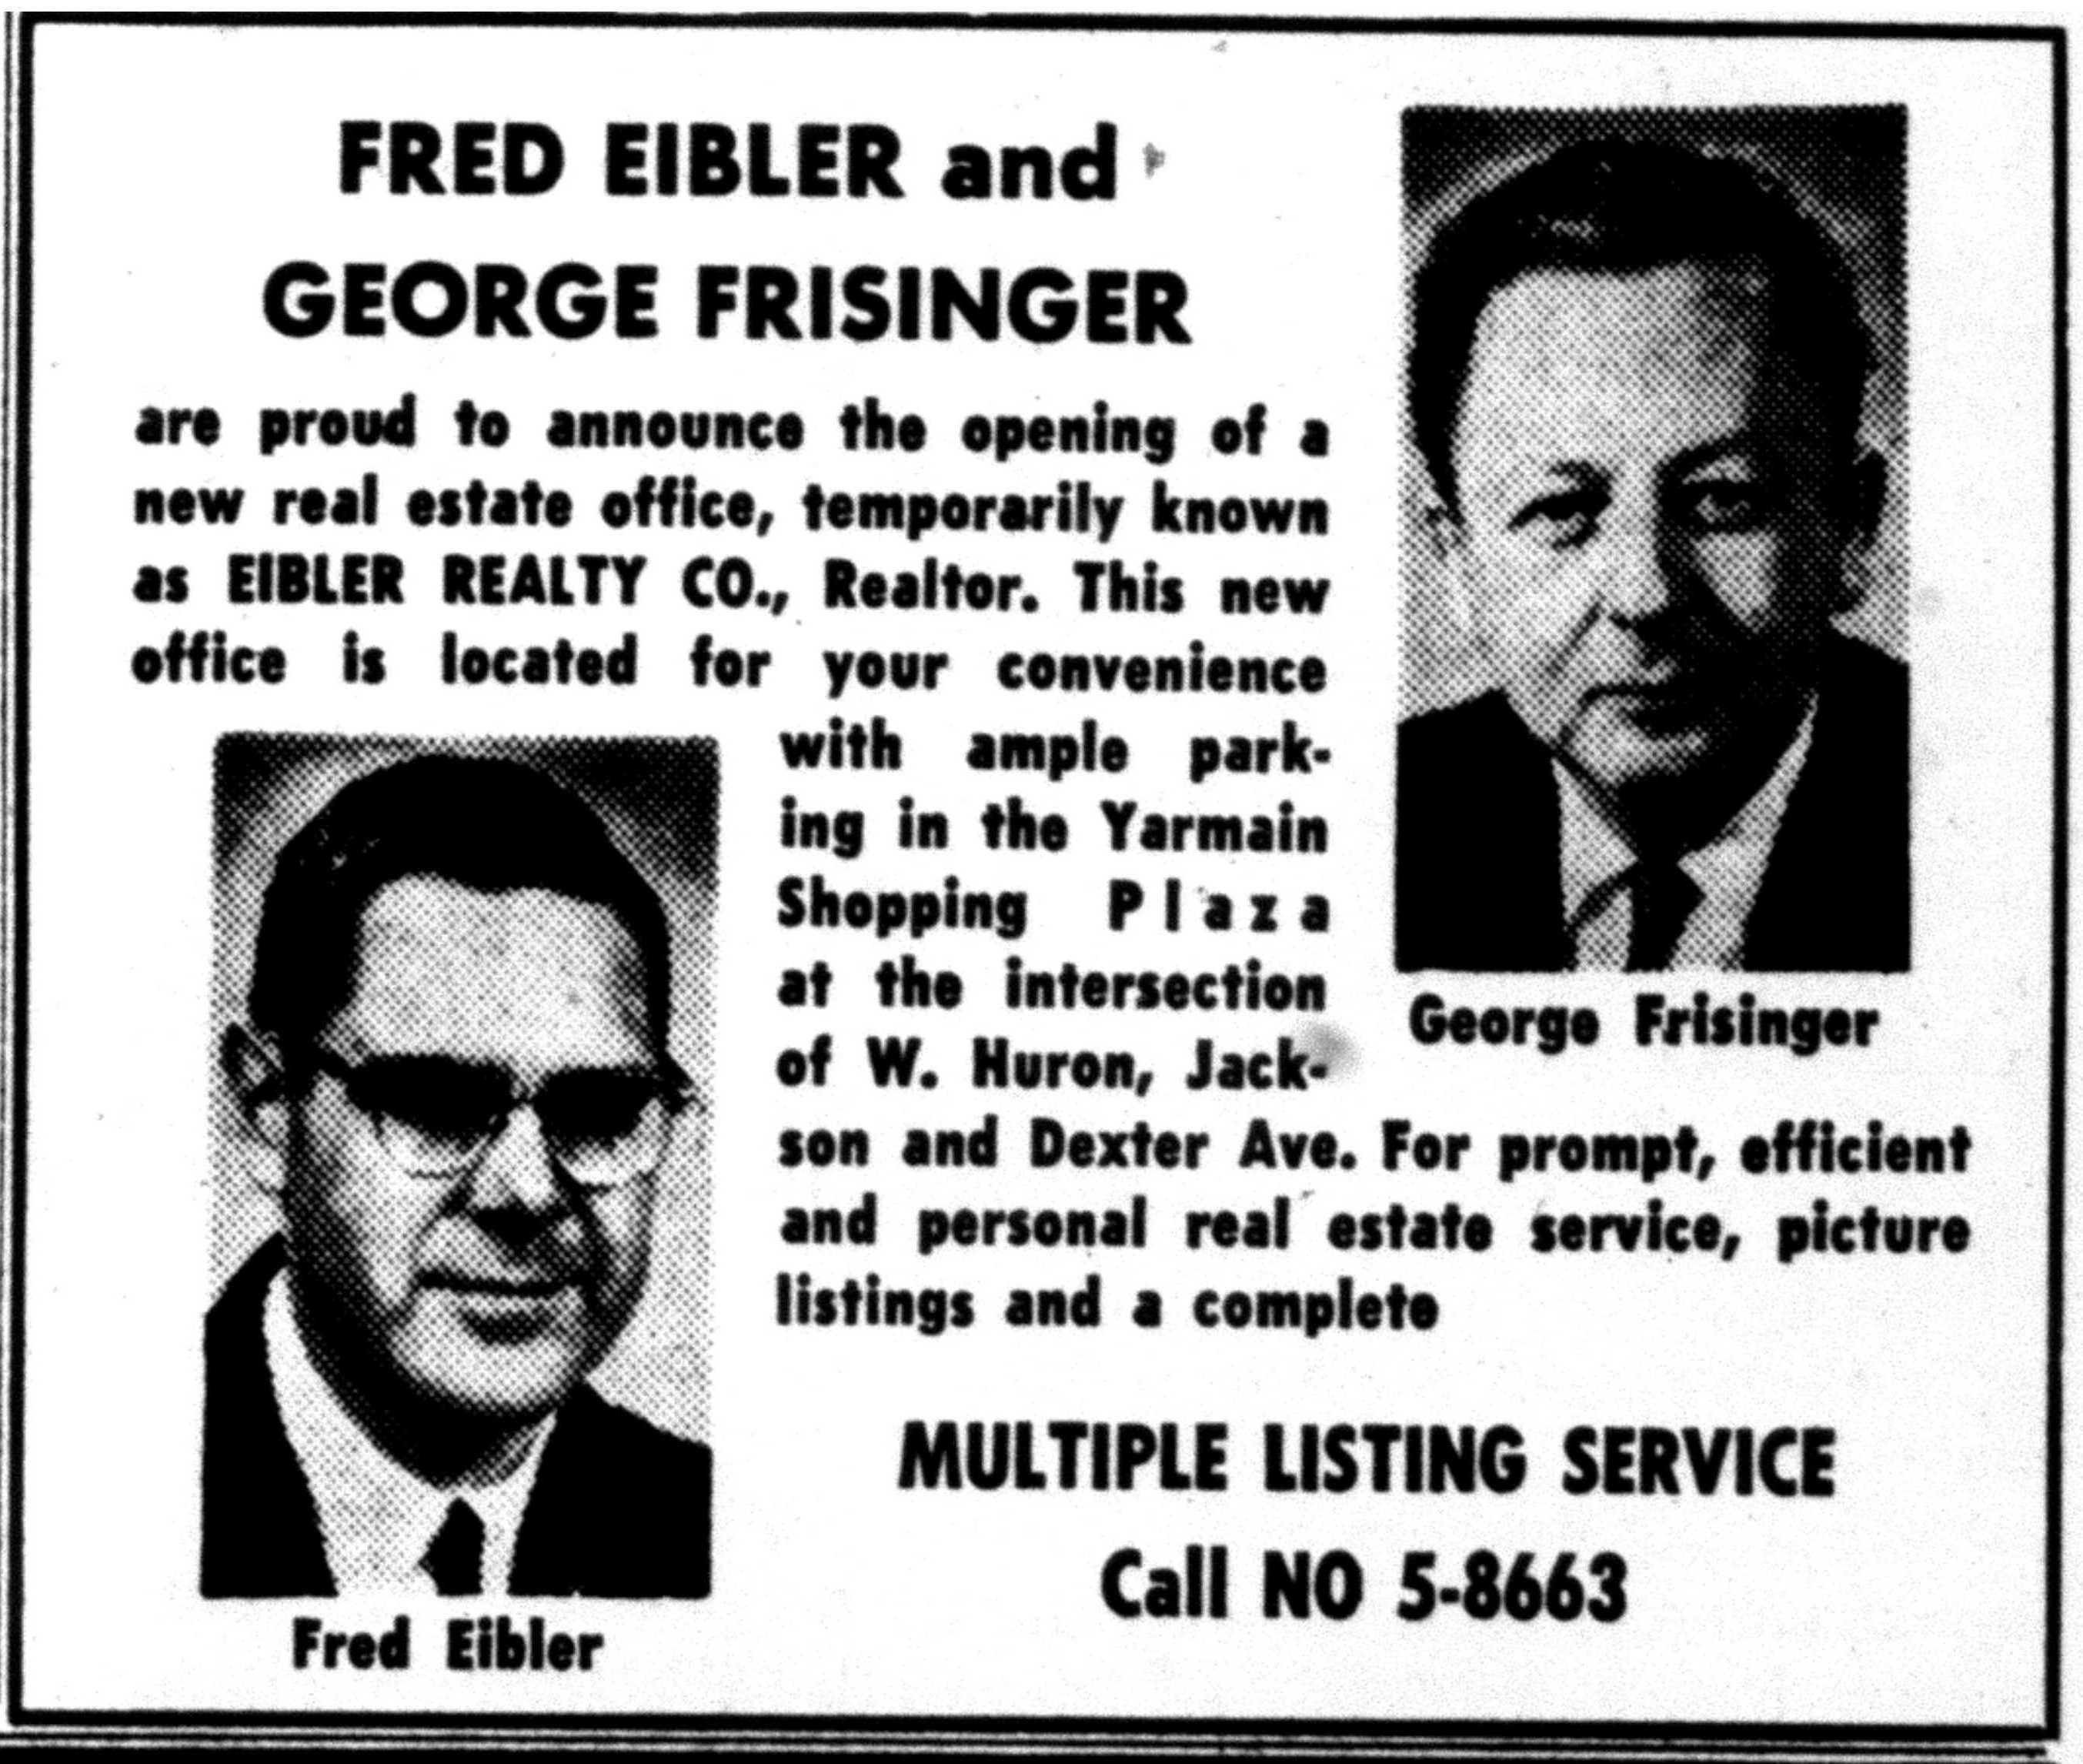 Eibler Realty Co. image